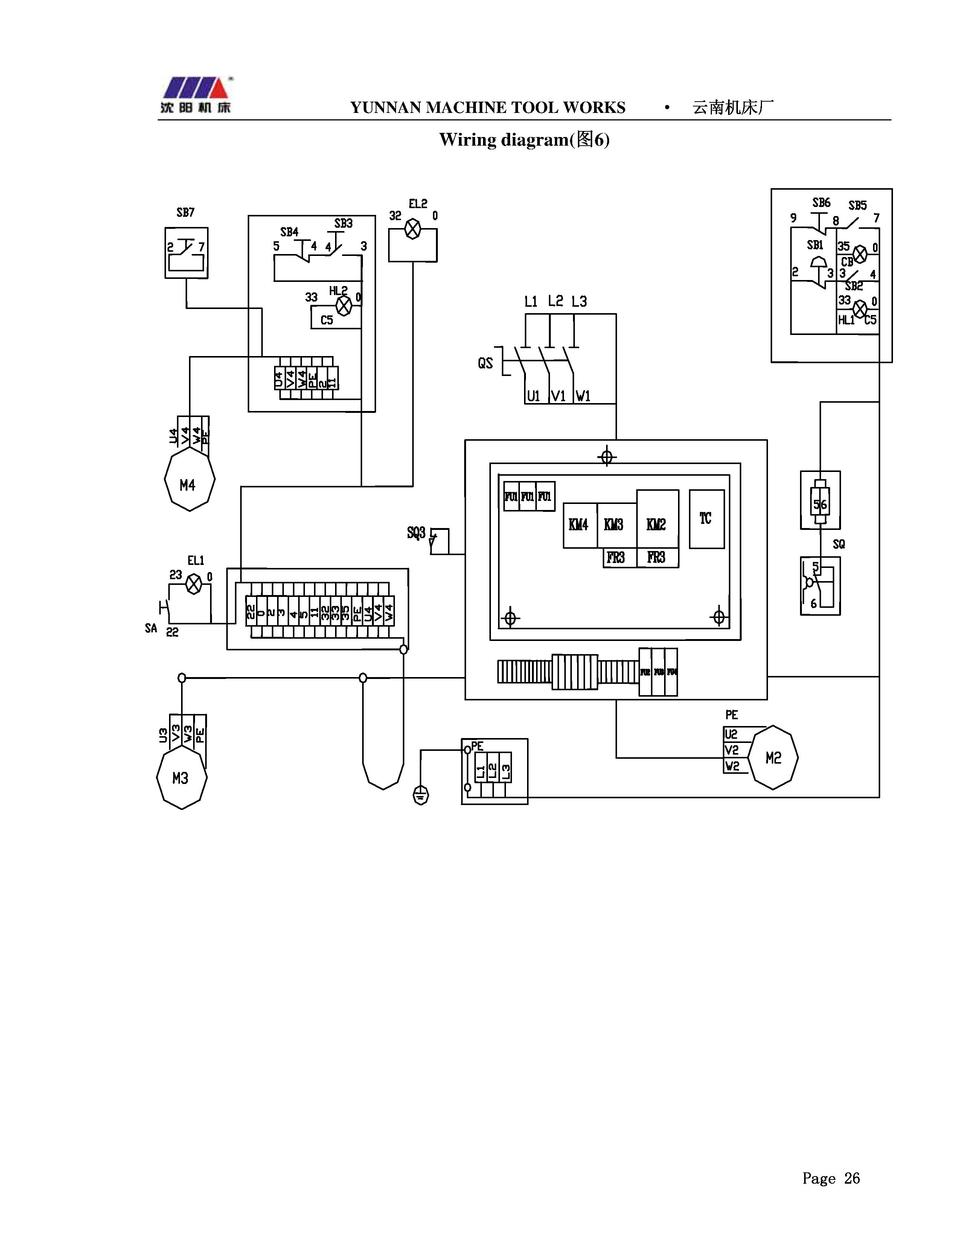 Karr 4040a Wiring Diagram | Wiring Liry on